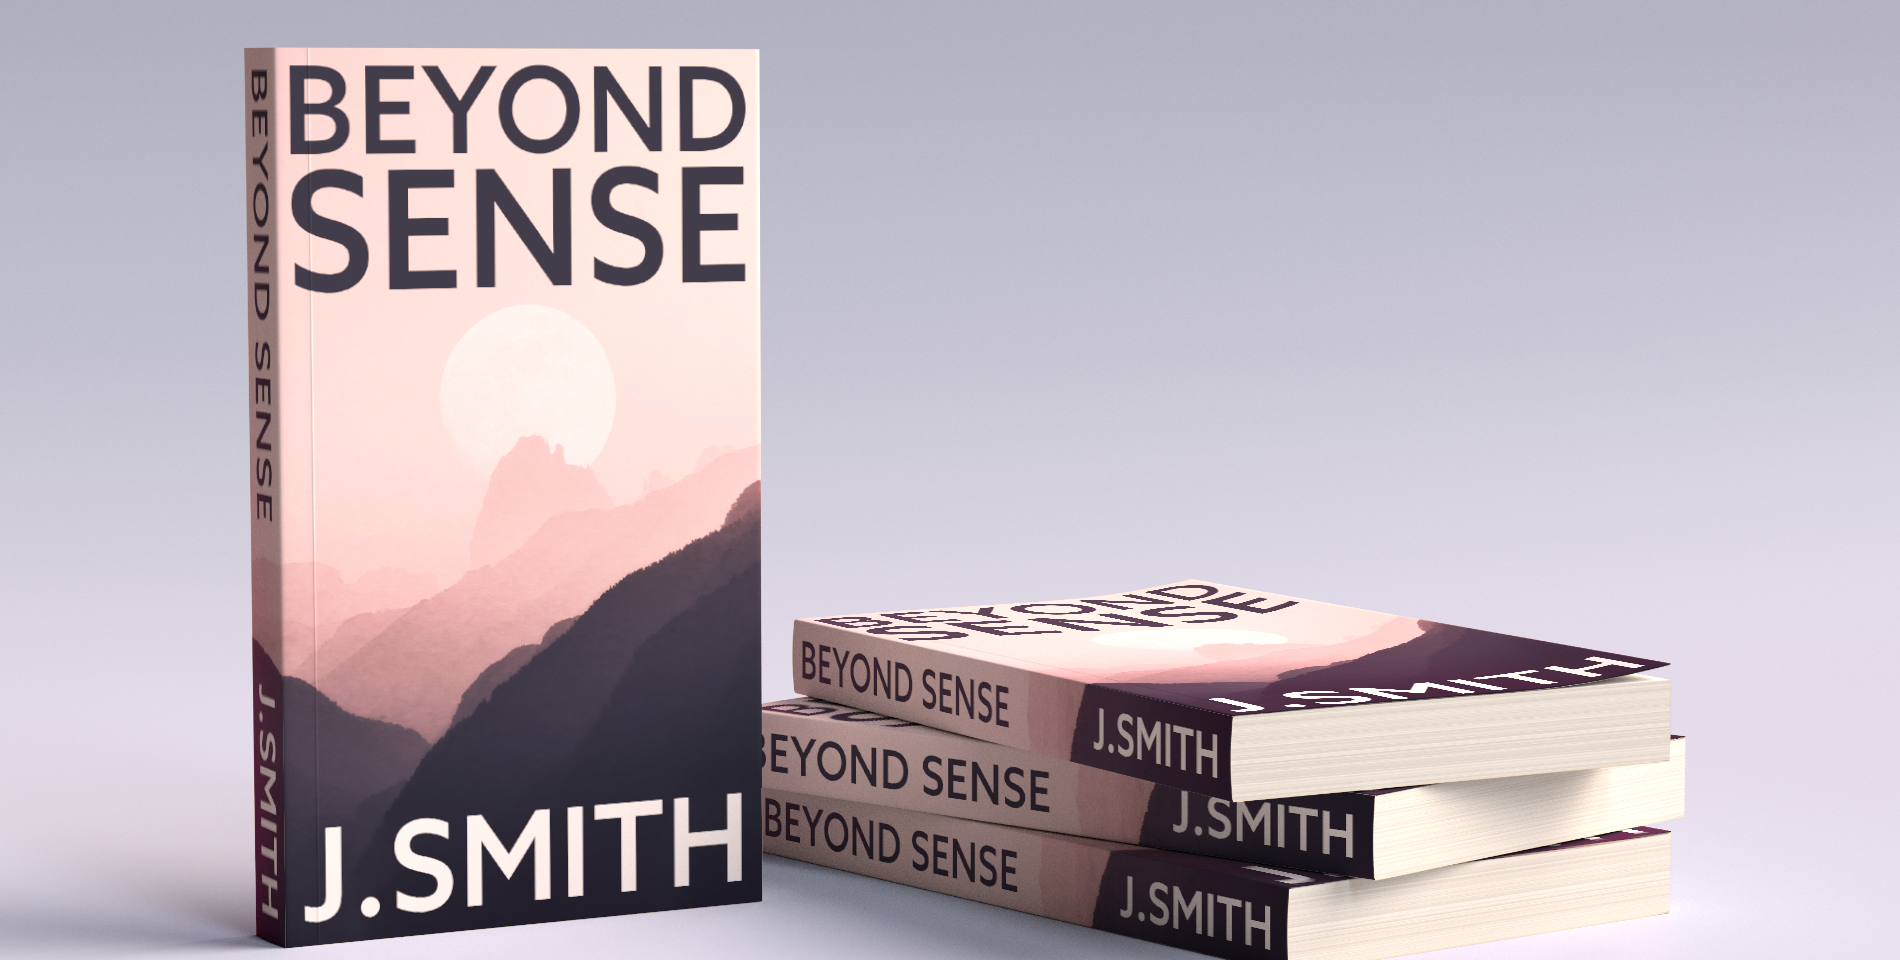 beyond sense book cover